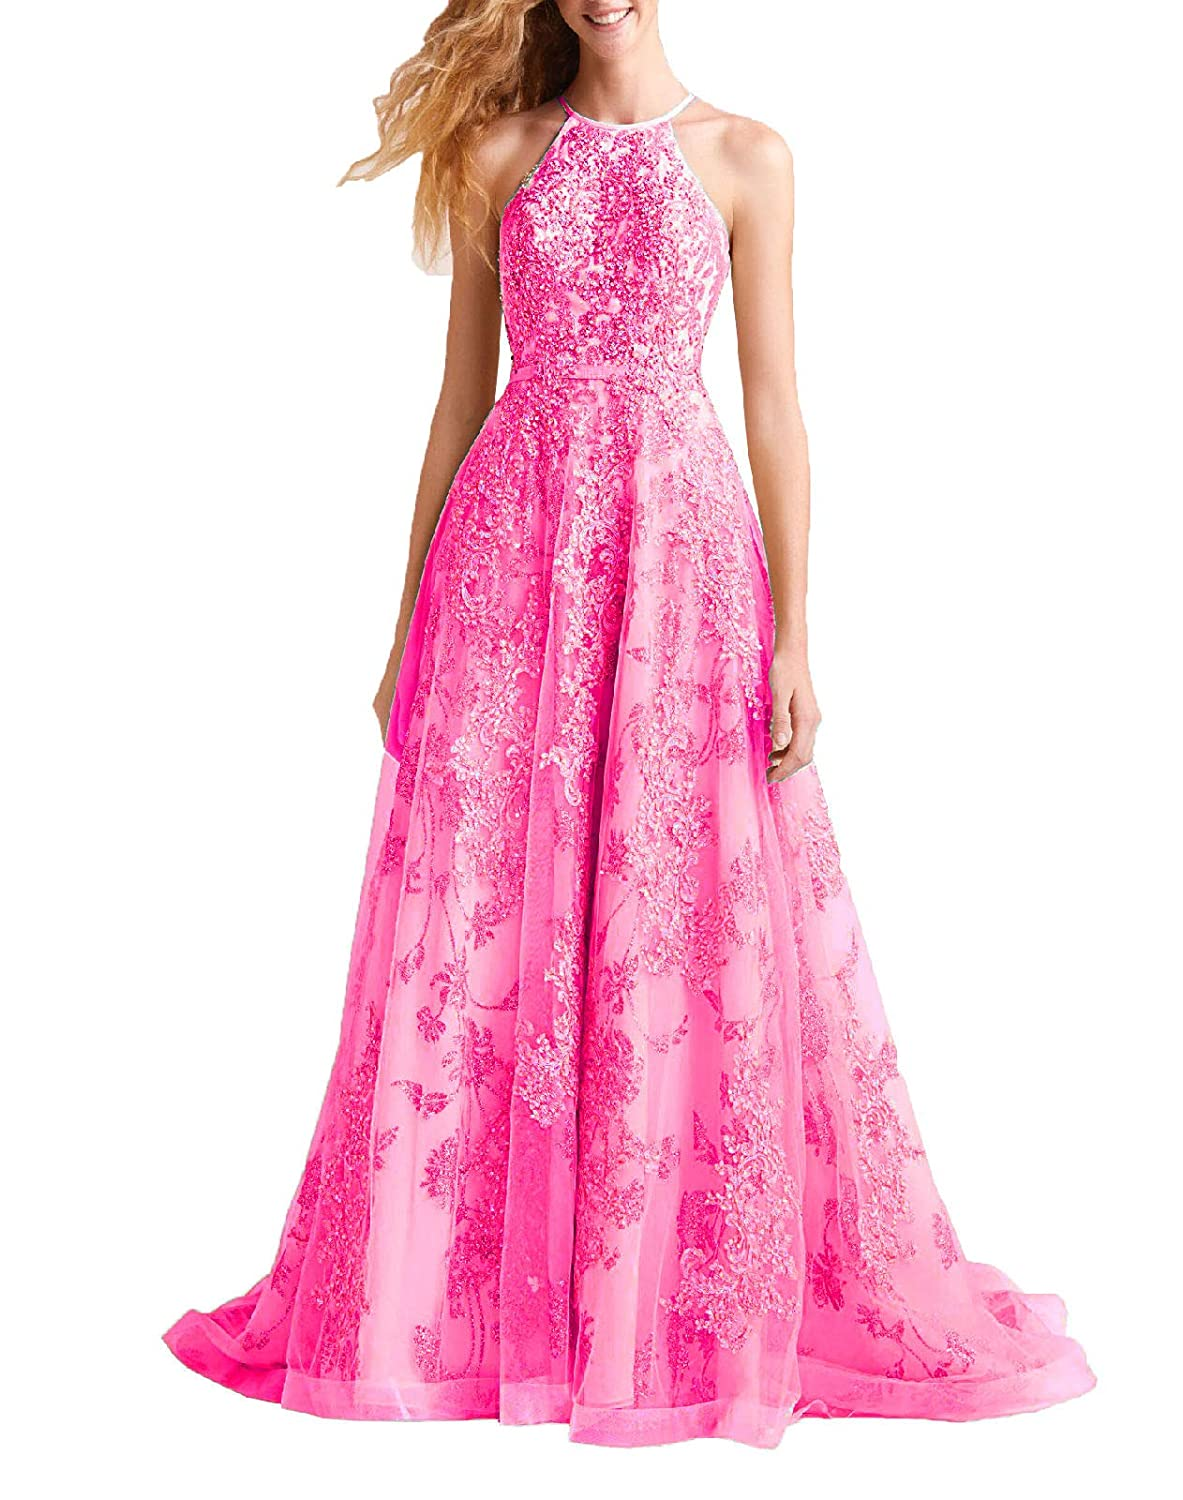 Hot Pink Wanshaqin Women's Aline Floral Beaded Prom Formal Dress Evening Cocktail Dress Bridesmaid Gown for Wedding Party